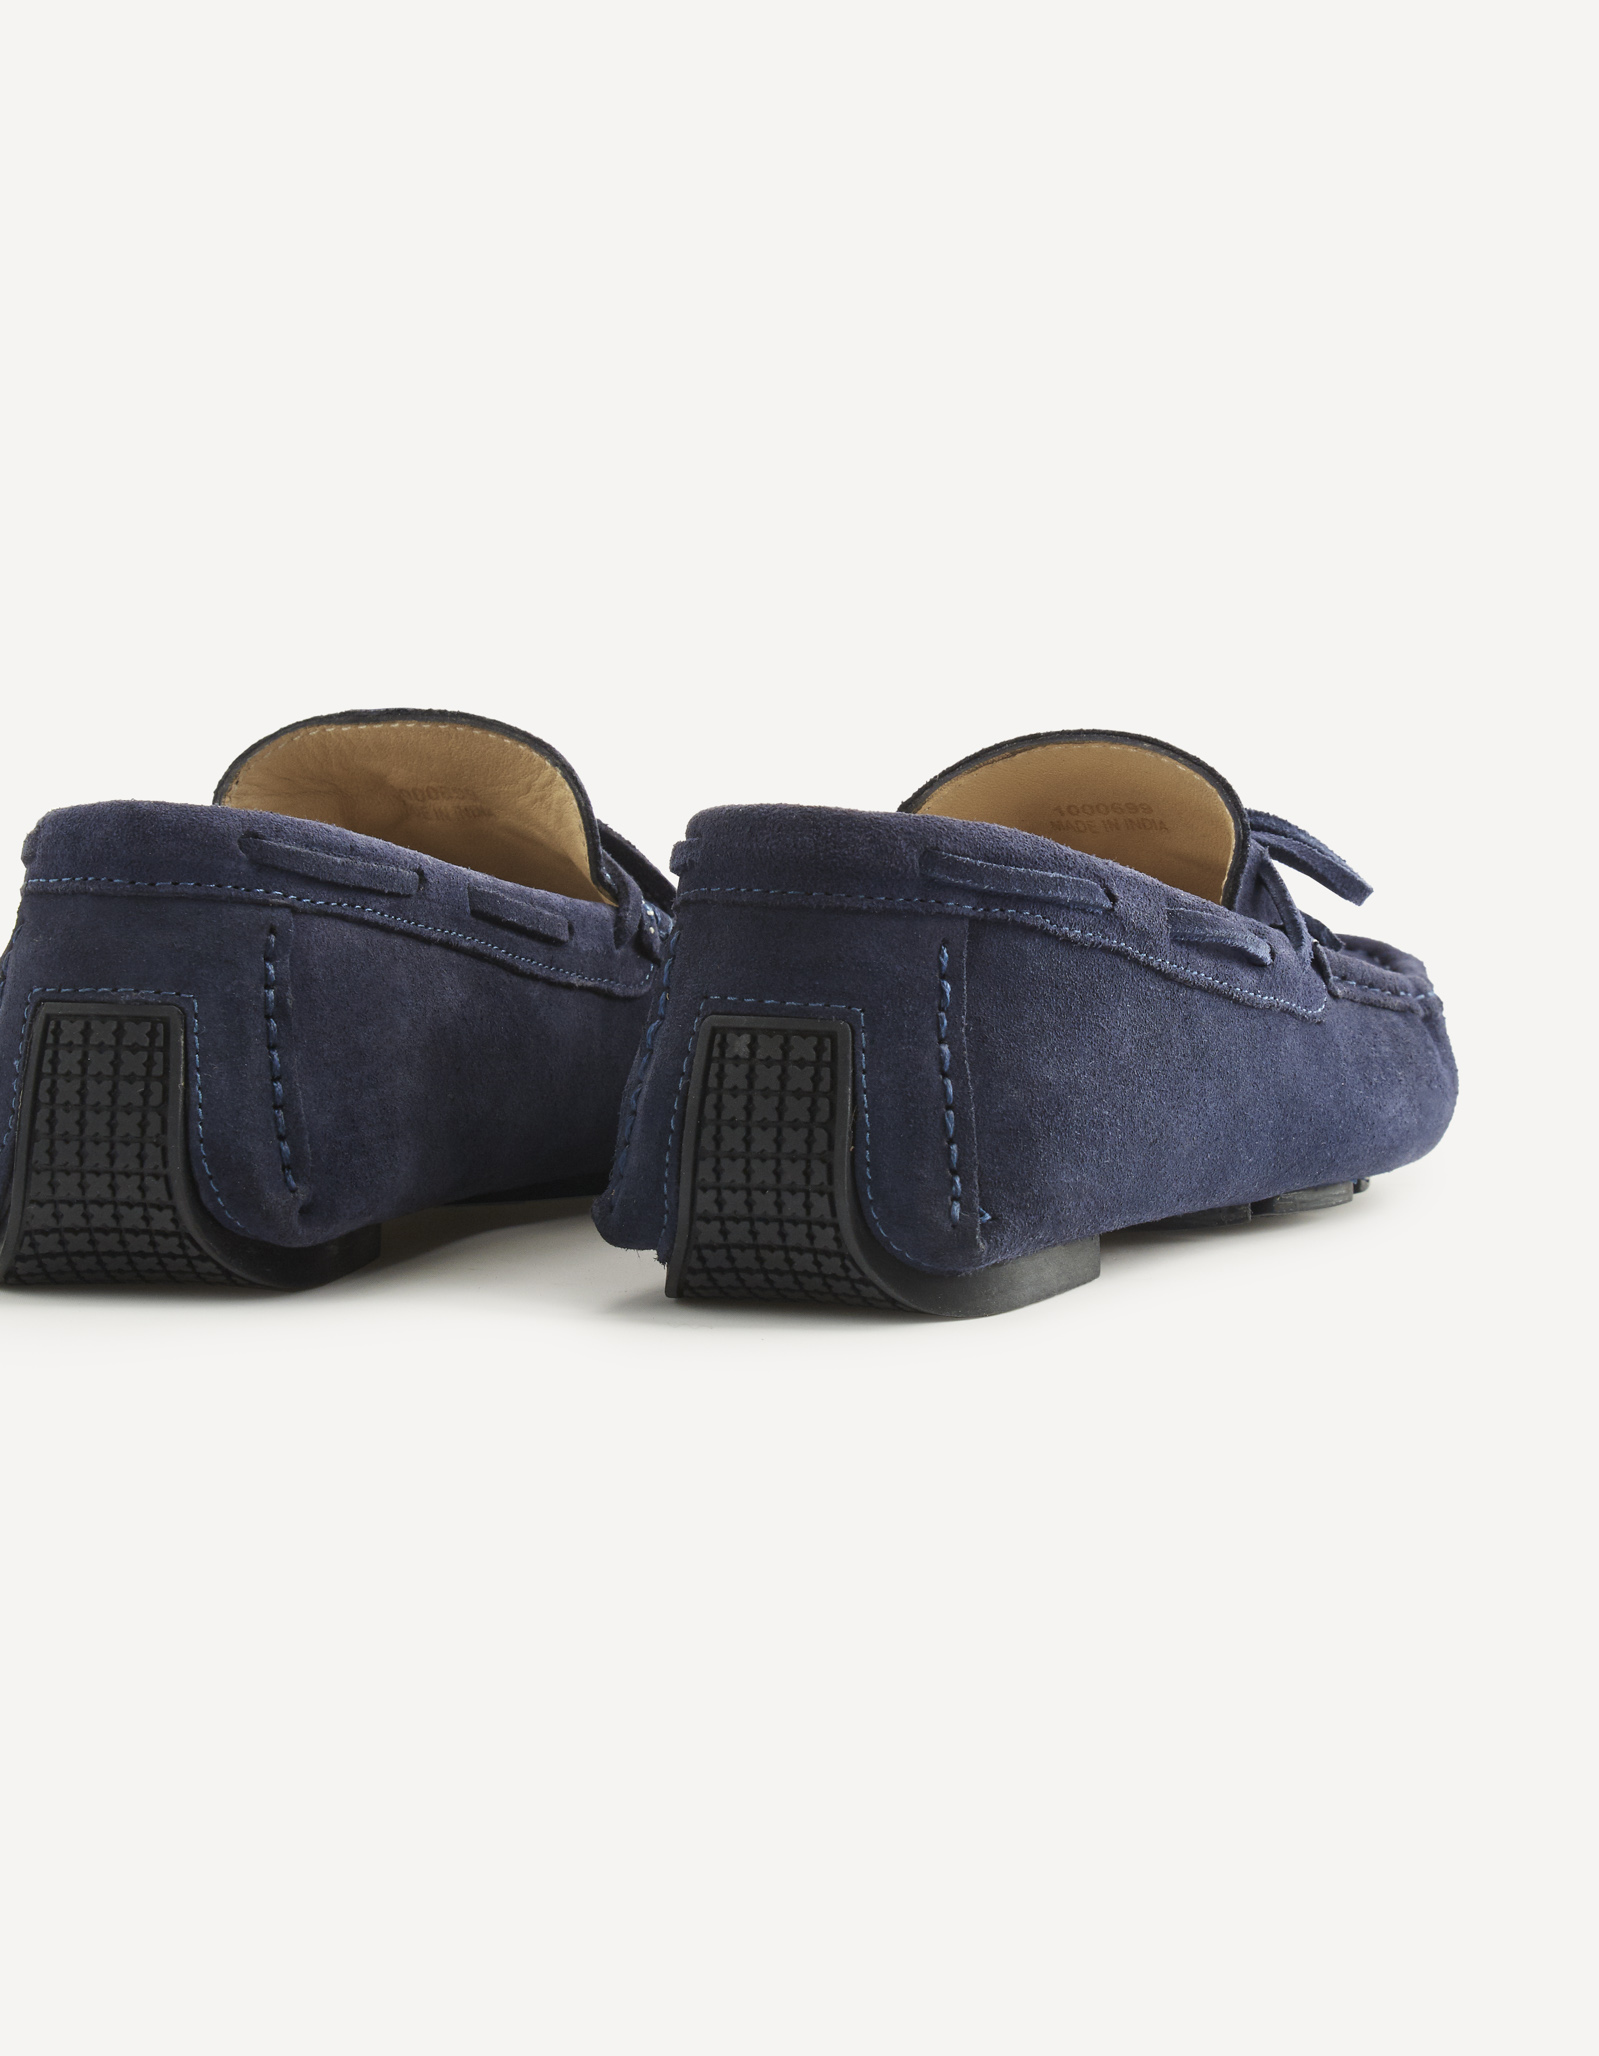 RYLOAFER_NAVY_8